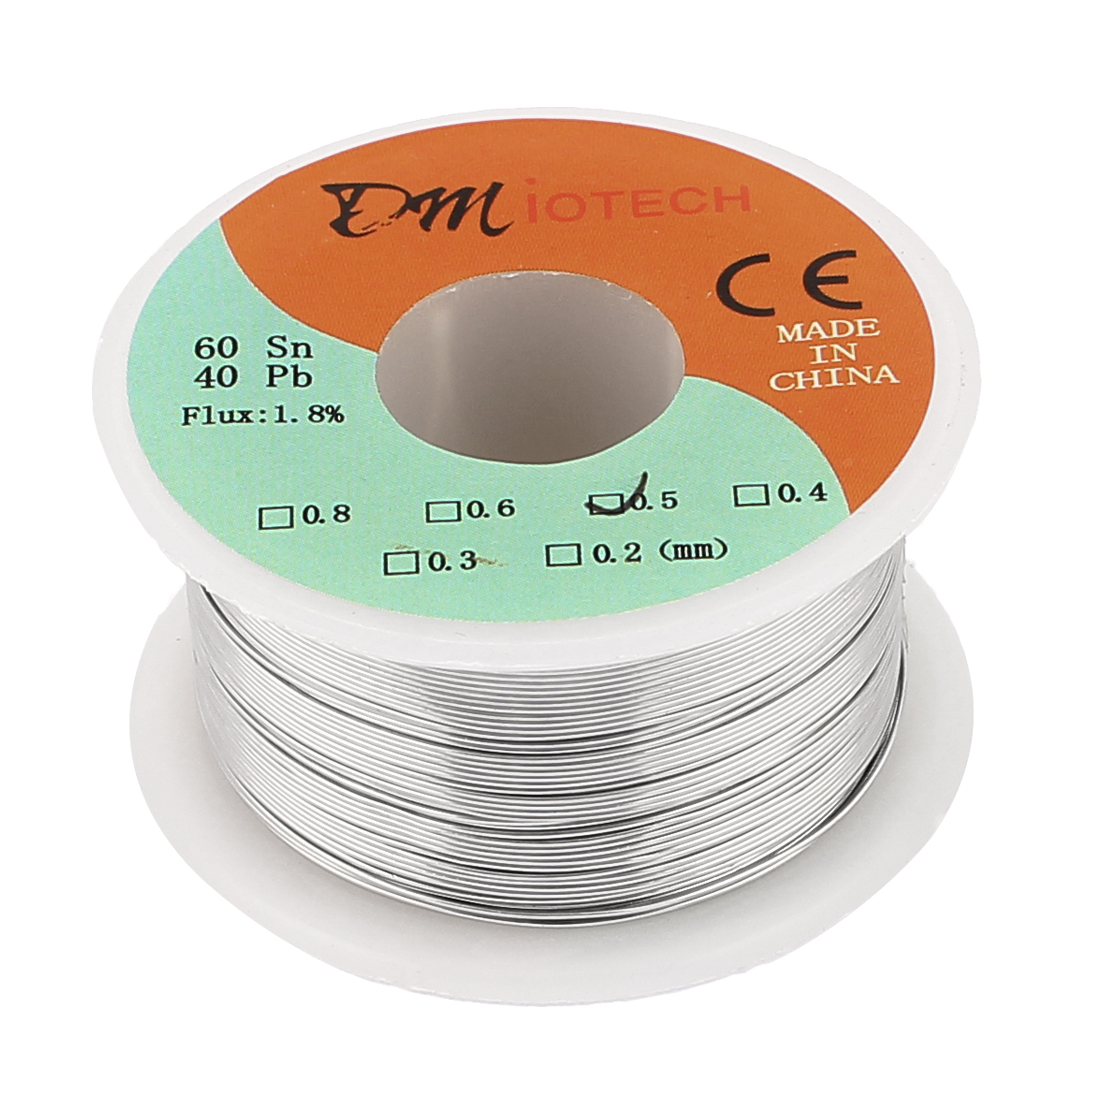 0.5mm Rosin Core Solder Tin Lead Solder Wire 60/40 for Electrical Soldering 100g